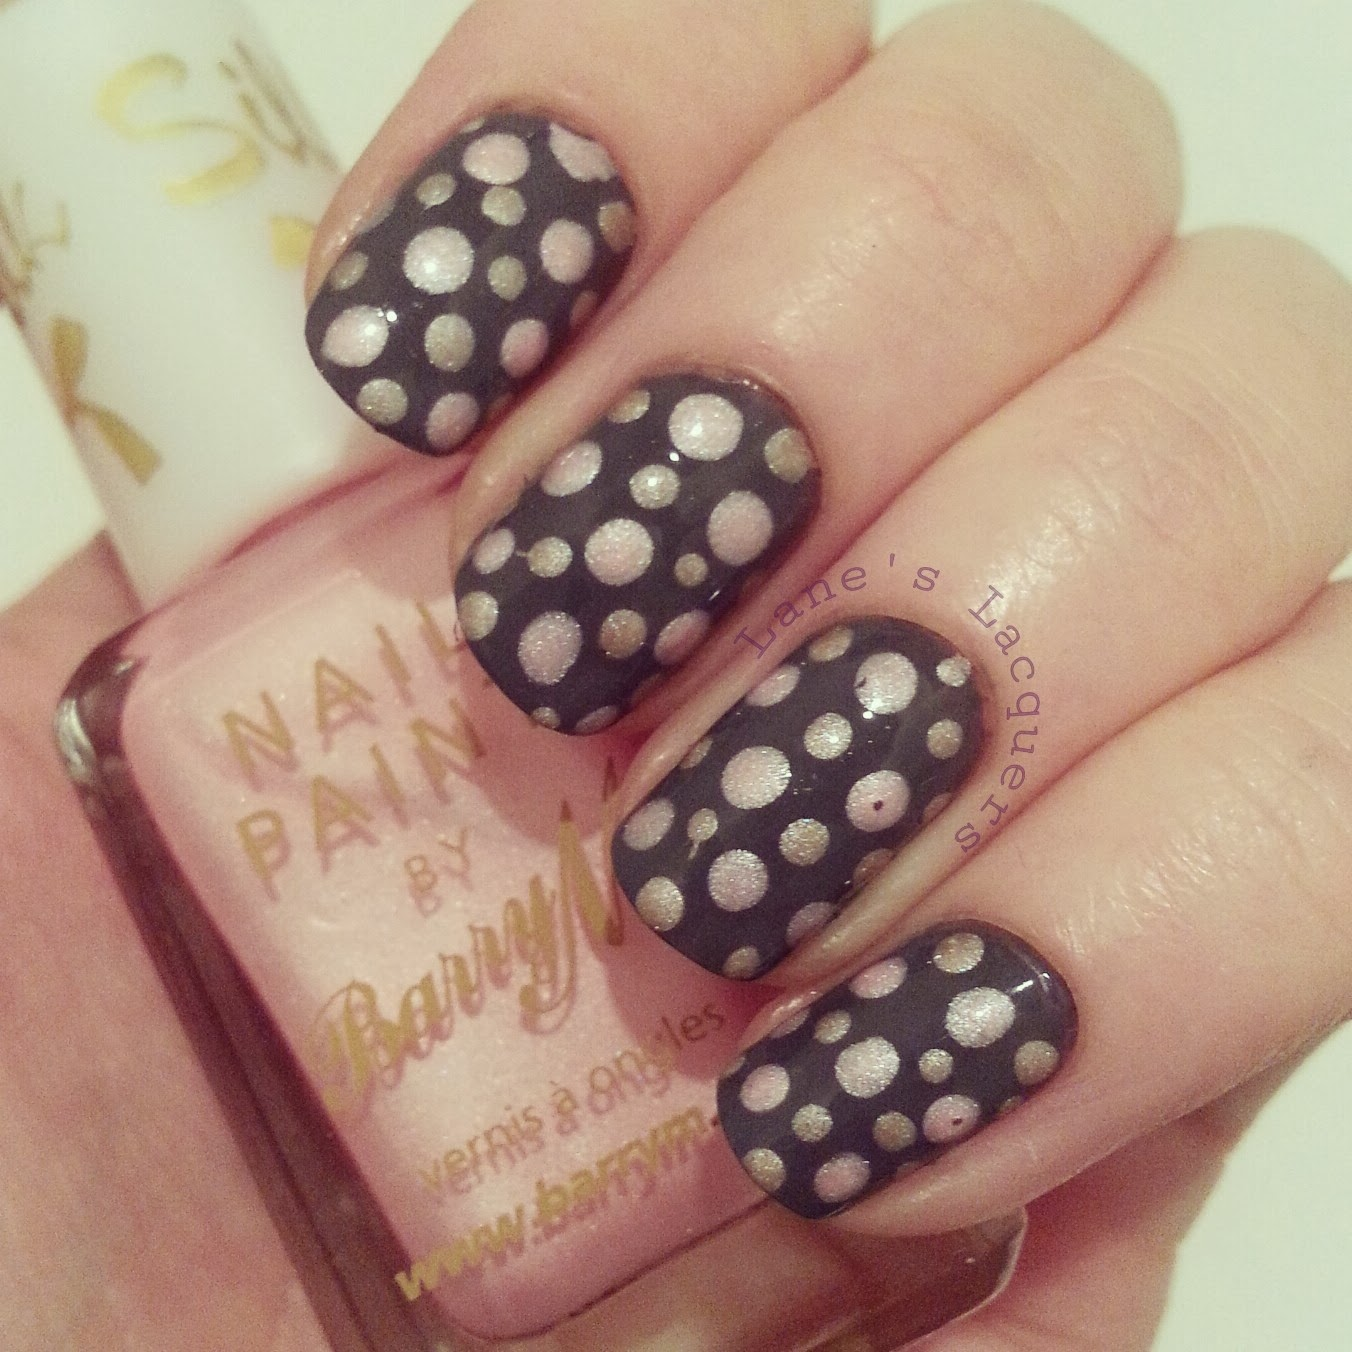 tri-polish-challenge-grey-pink-brown-spotty-nails